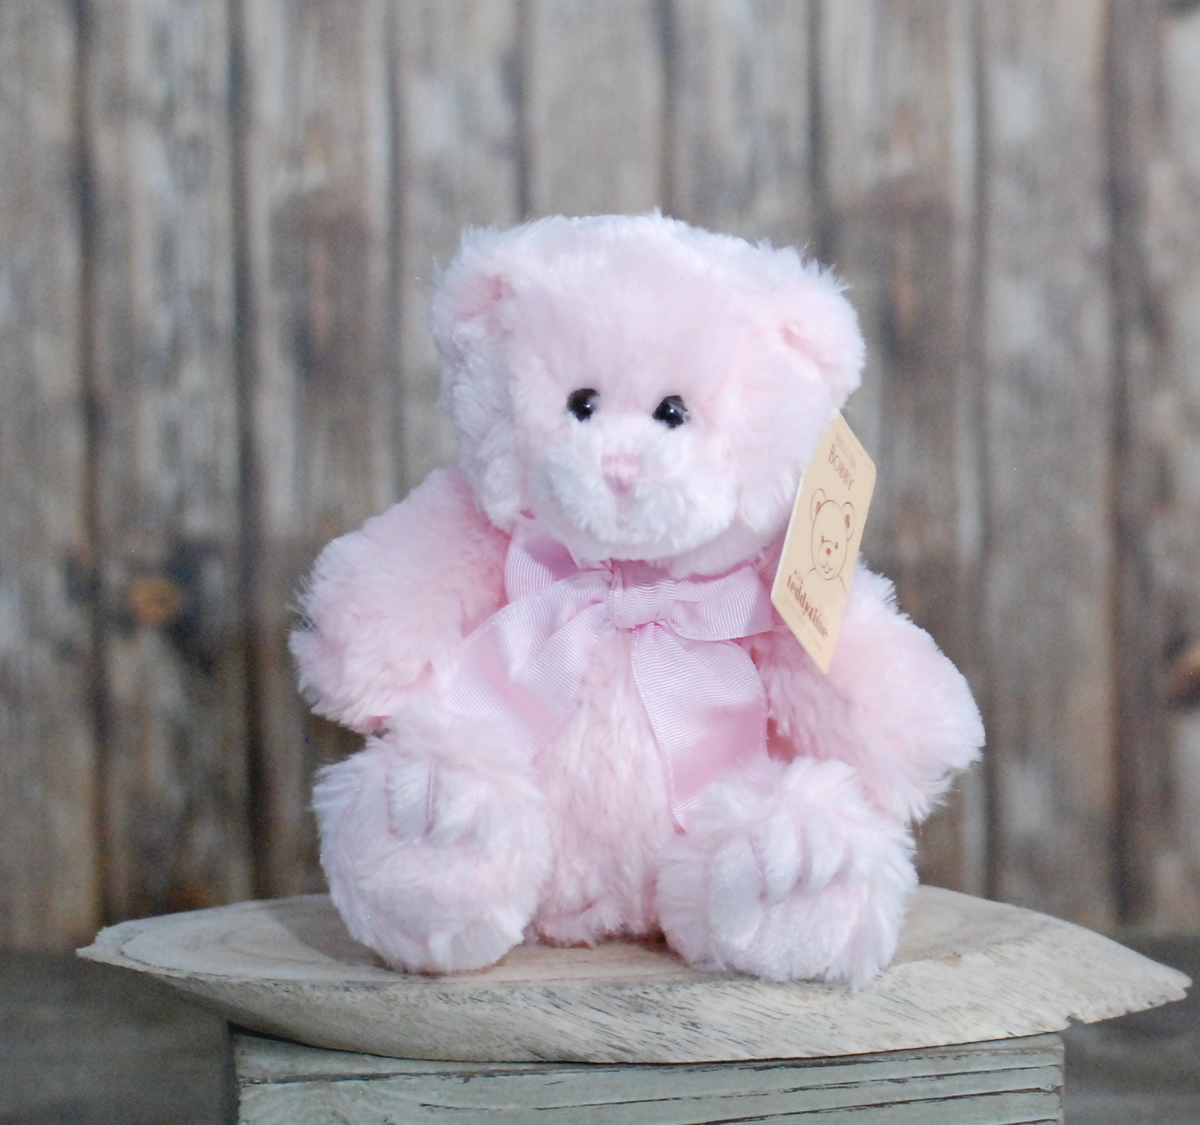 Pink teddy bear medium – 25cm